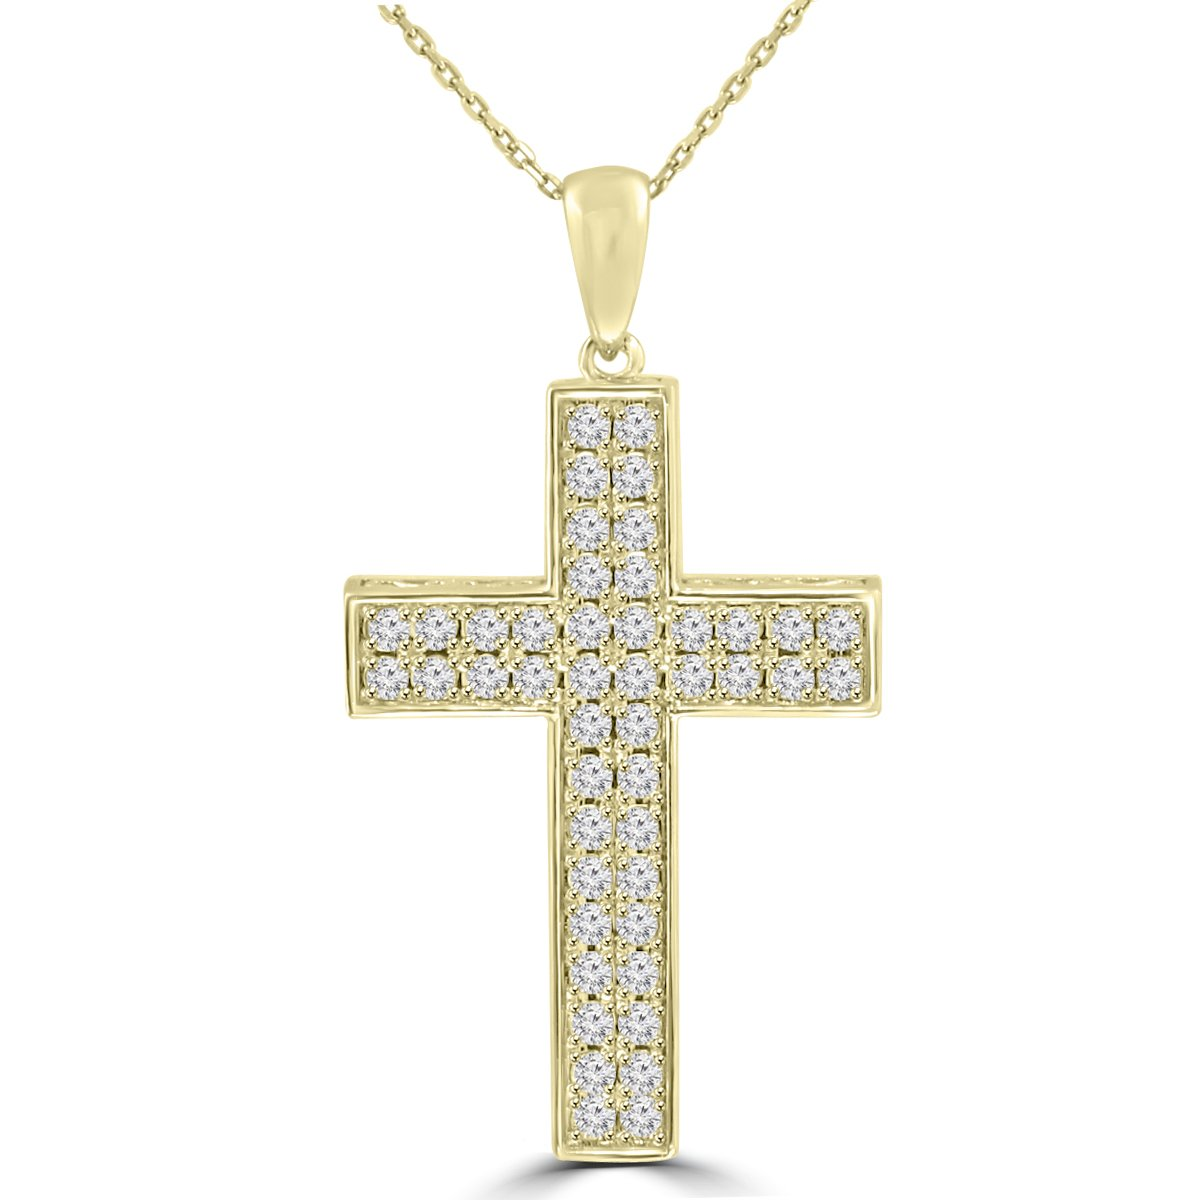 1.61 ct t.w. Round Cut Diamond Cross Pendant Necklace in 14 kt Yellow Gold